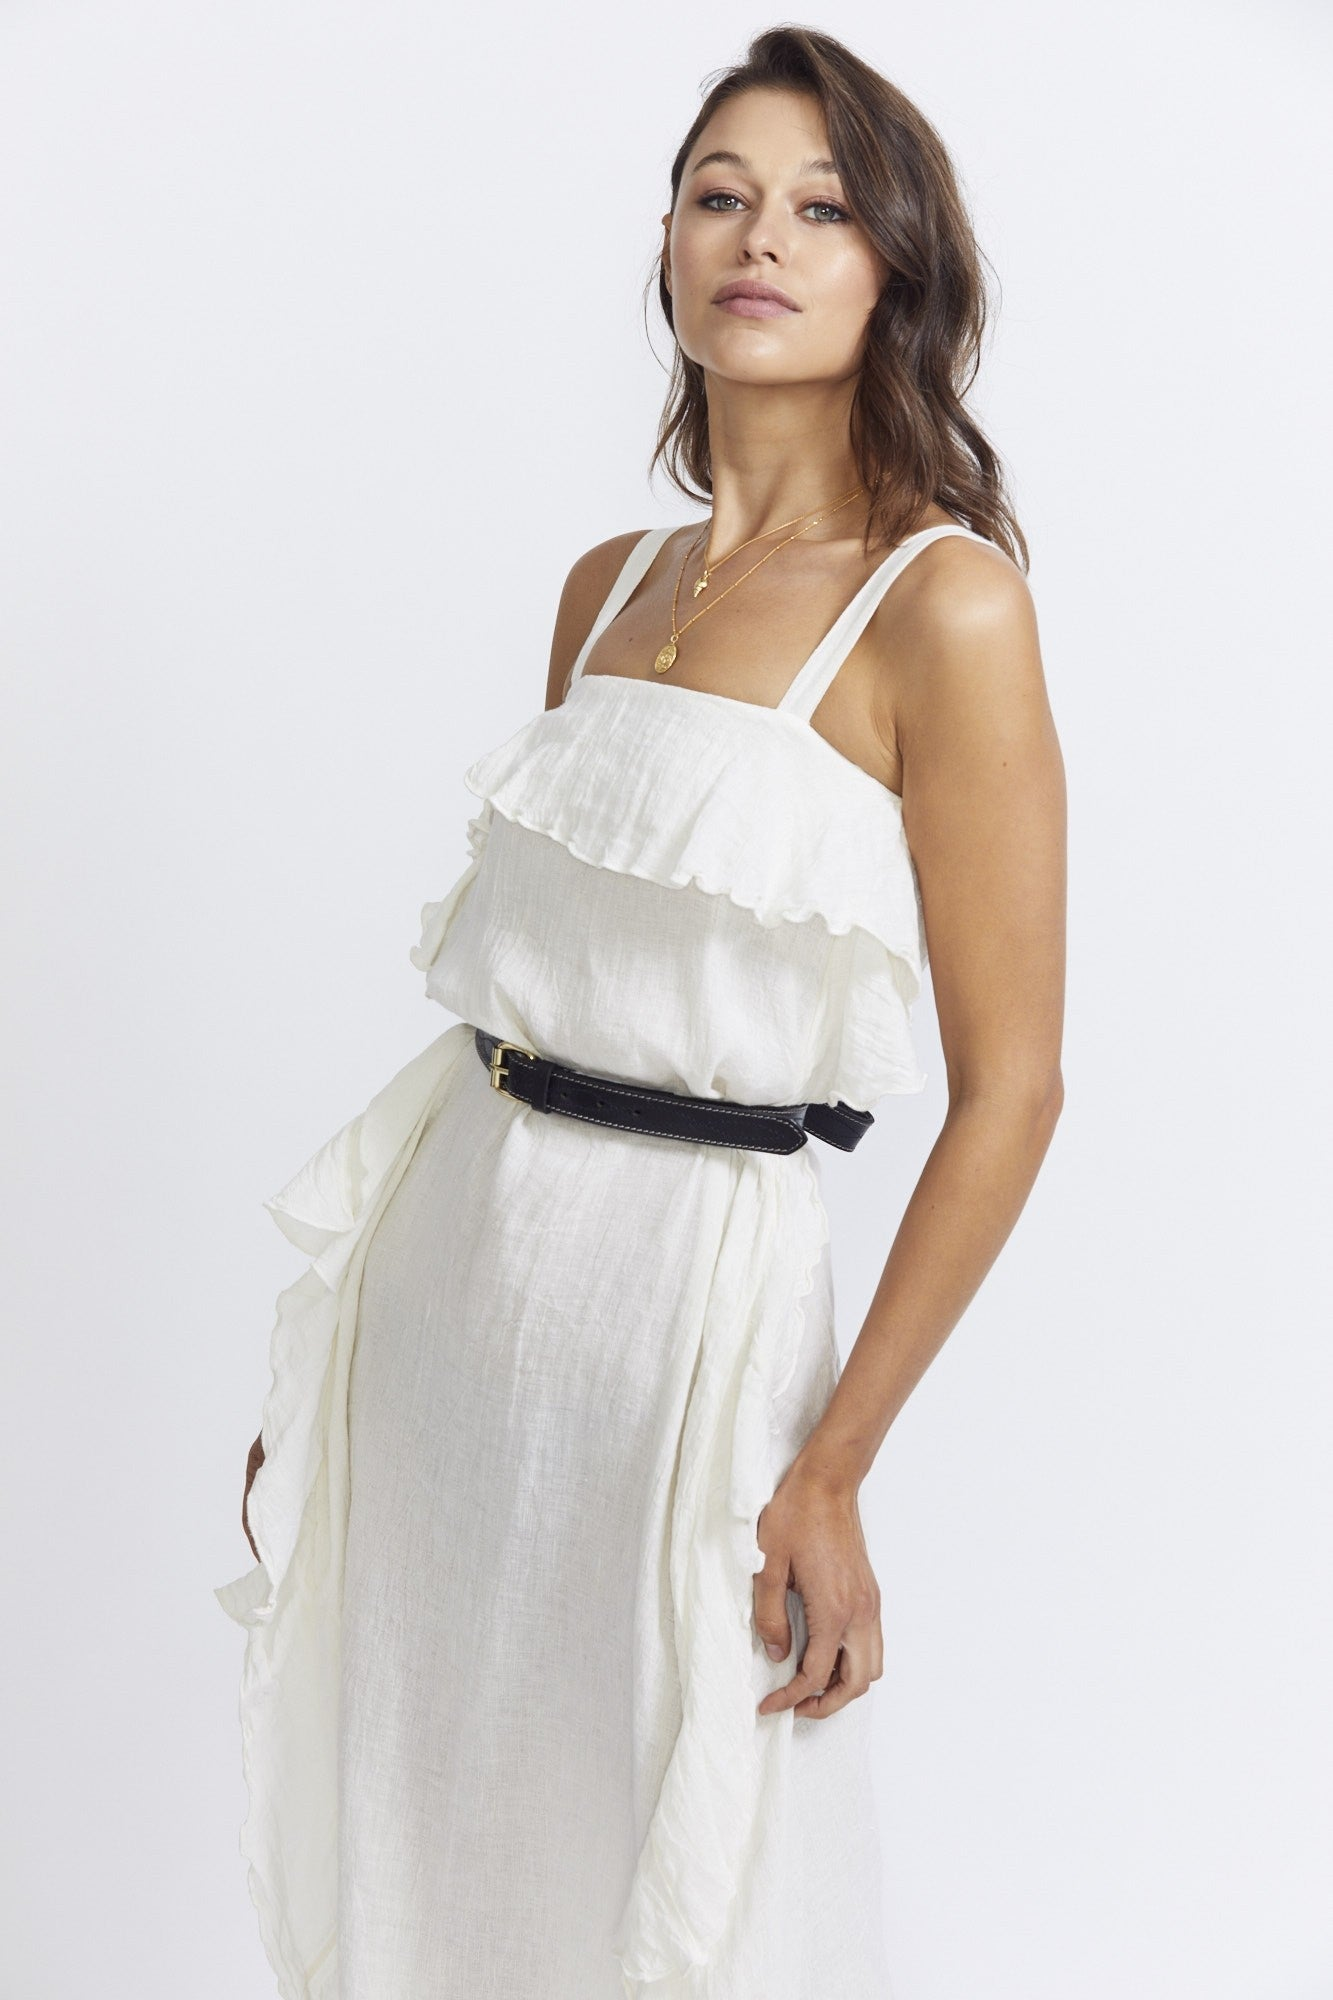 Estilo Emporio - Pana Vola Dress